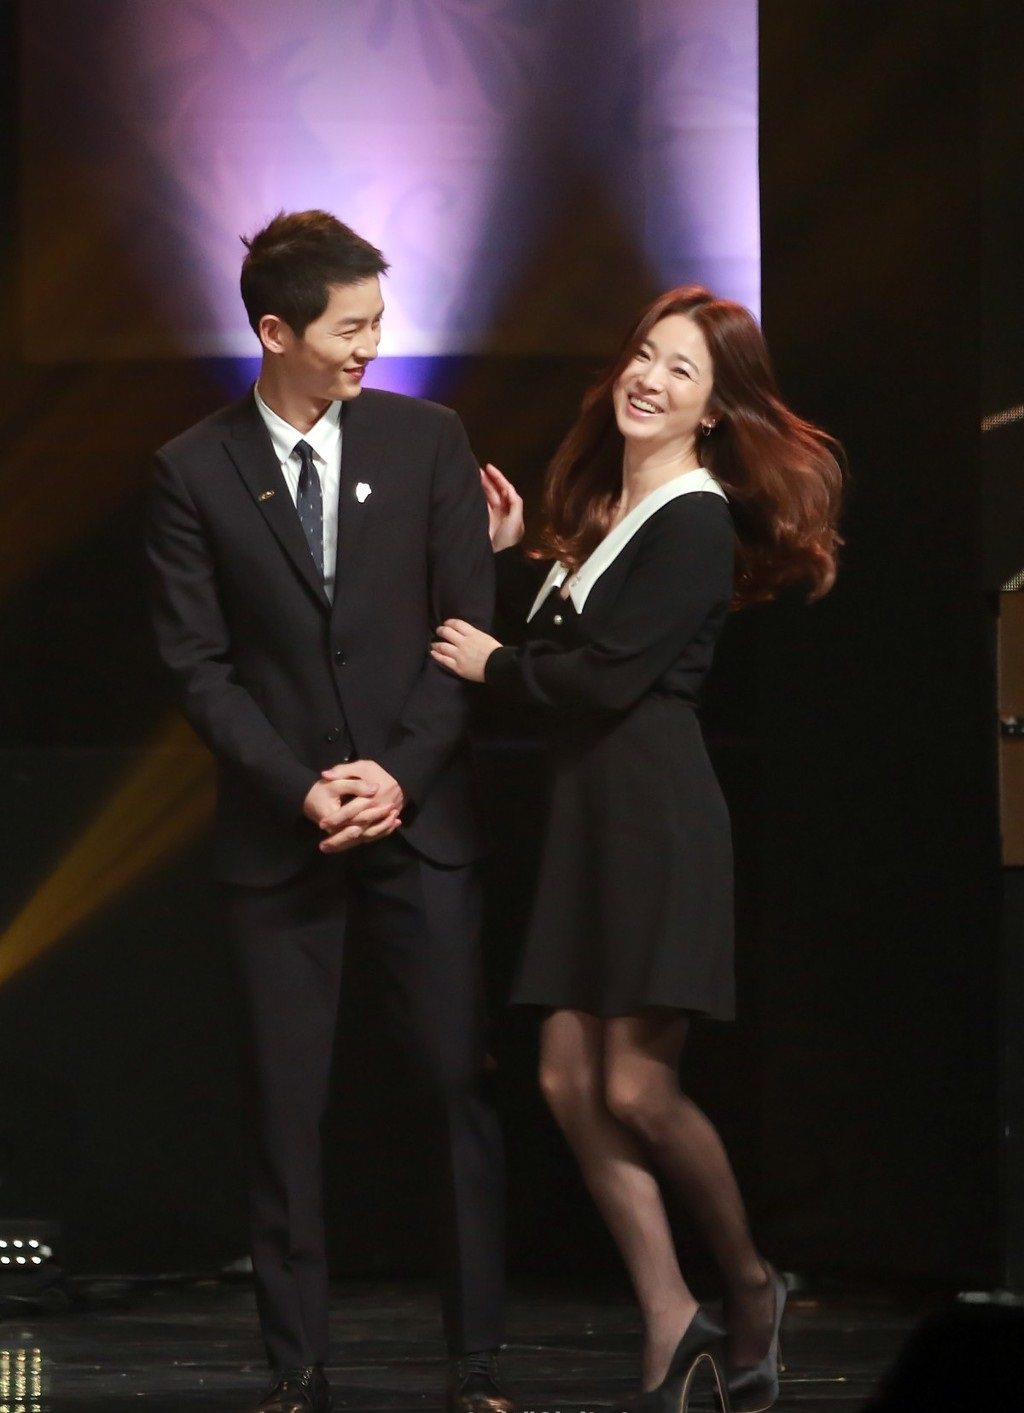 Korea Recently Repealed A Law That Would Have Prevented The Song Couple Getting Married